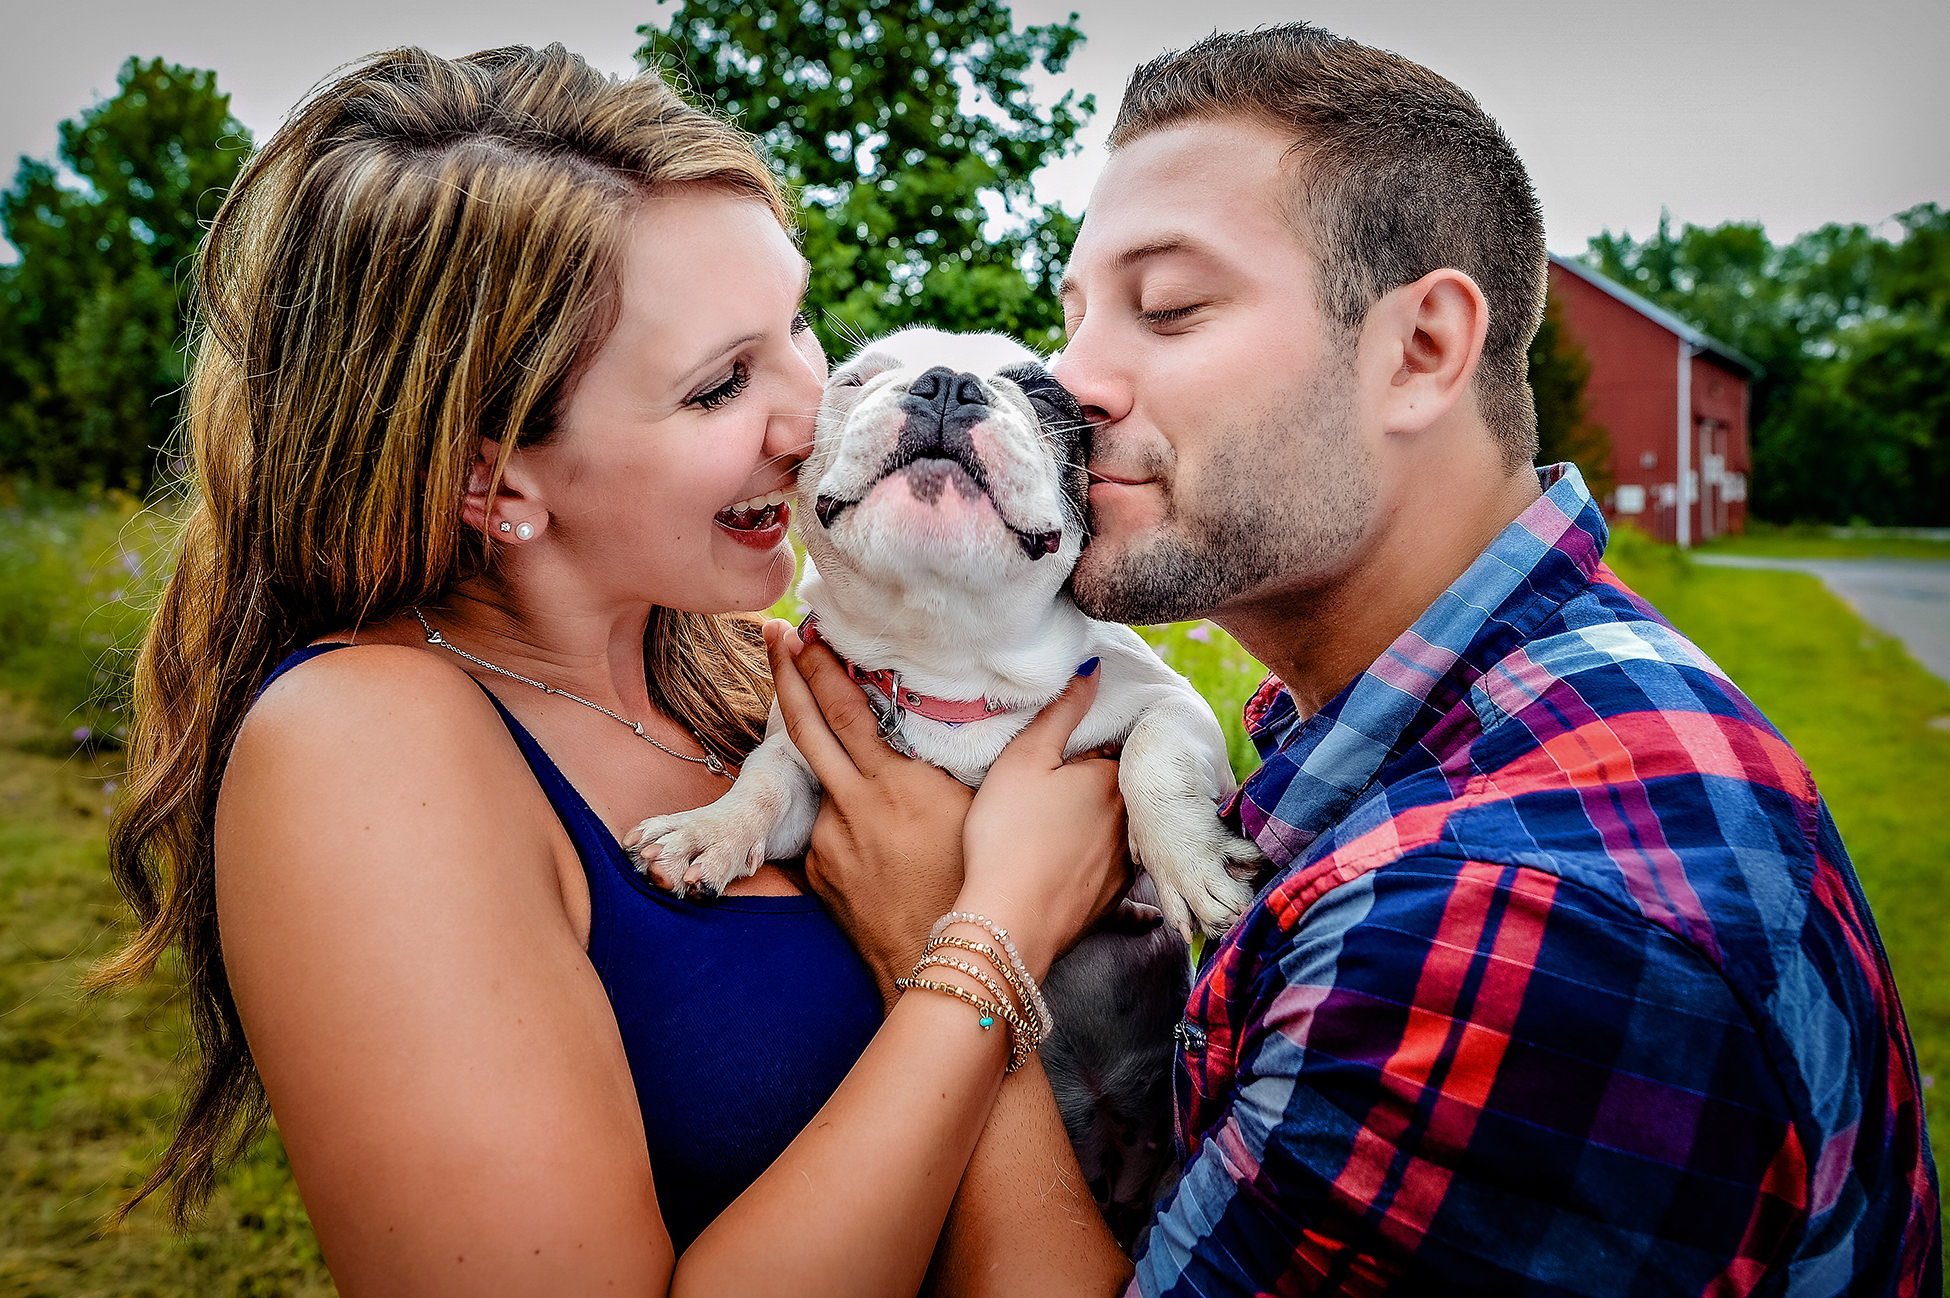 dog-show-jeff-tisman-worlds-best-wedding-photos-engagement-photos-with-cute-pug